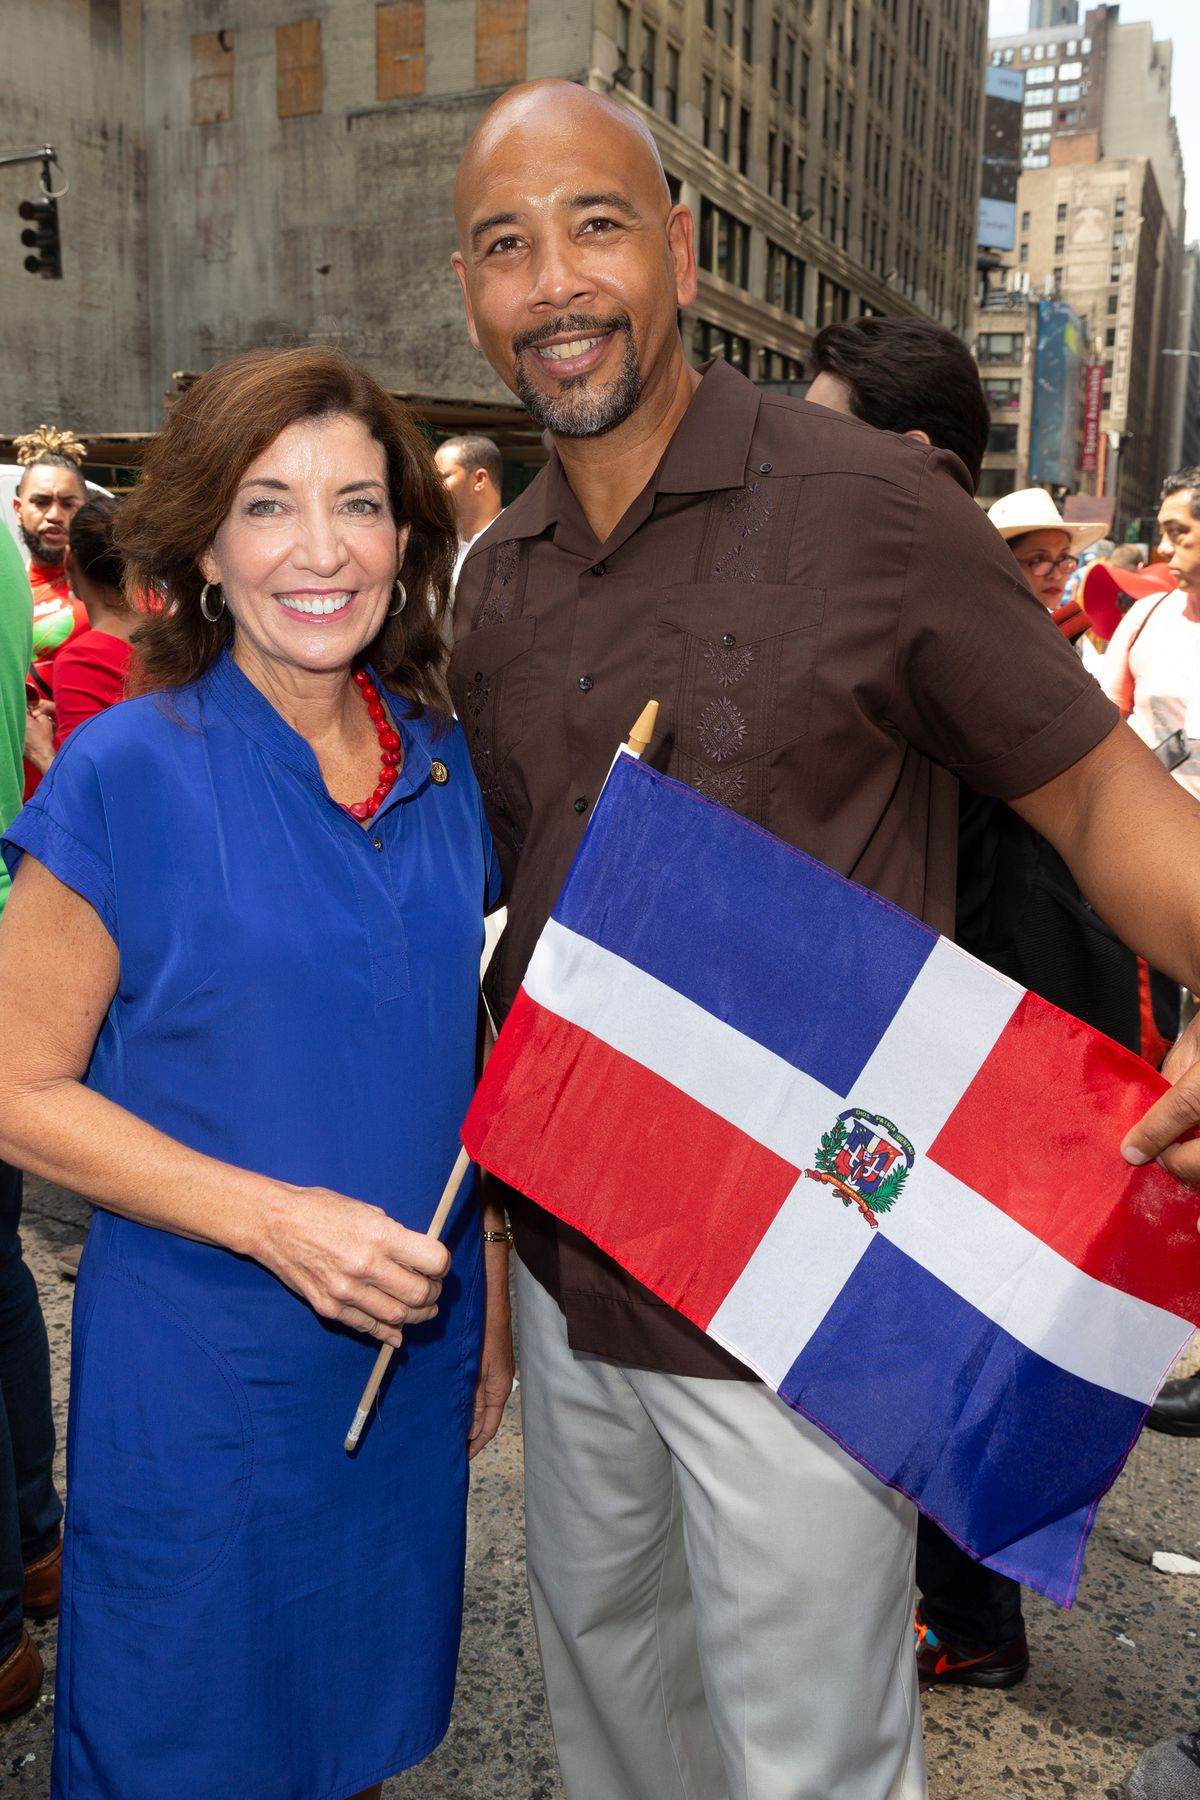 Then Lt. Gov Kathy Hochul with Bronx Borough President Rubén Díaz Jr. at the Dominican Republic parade in 2018.